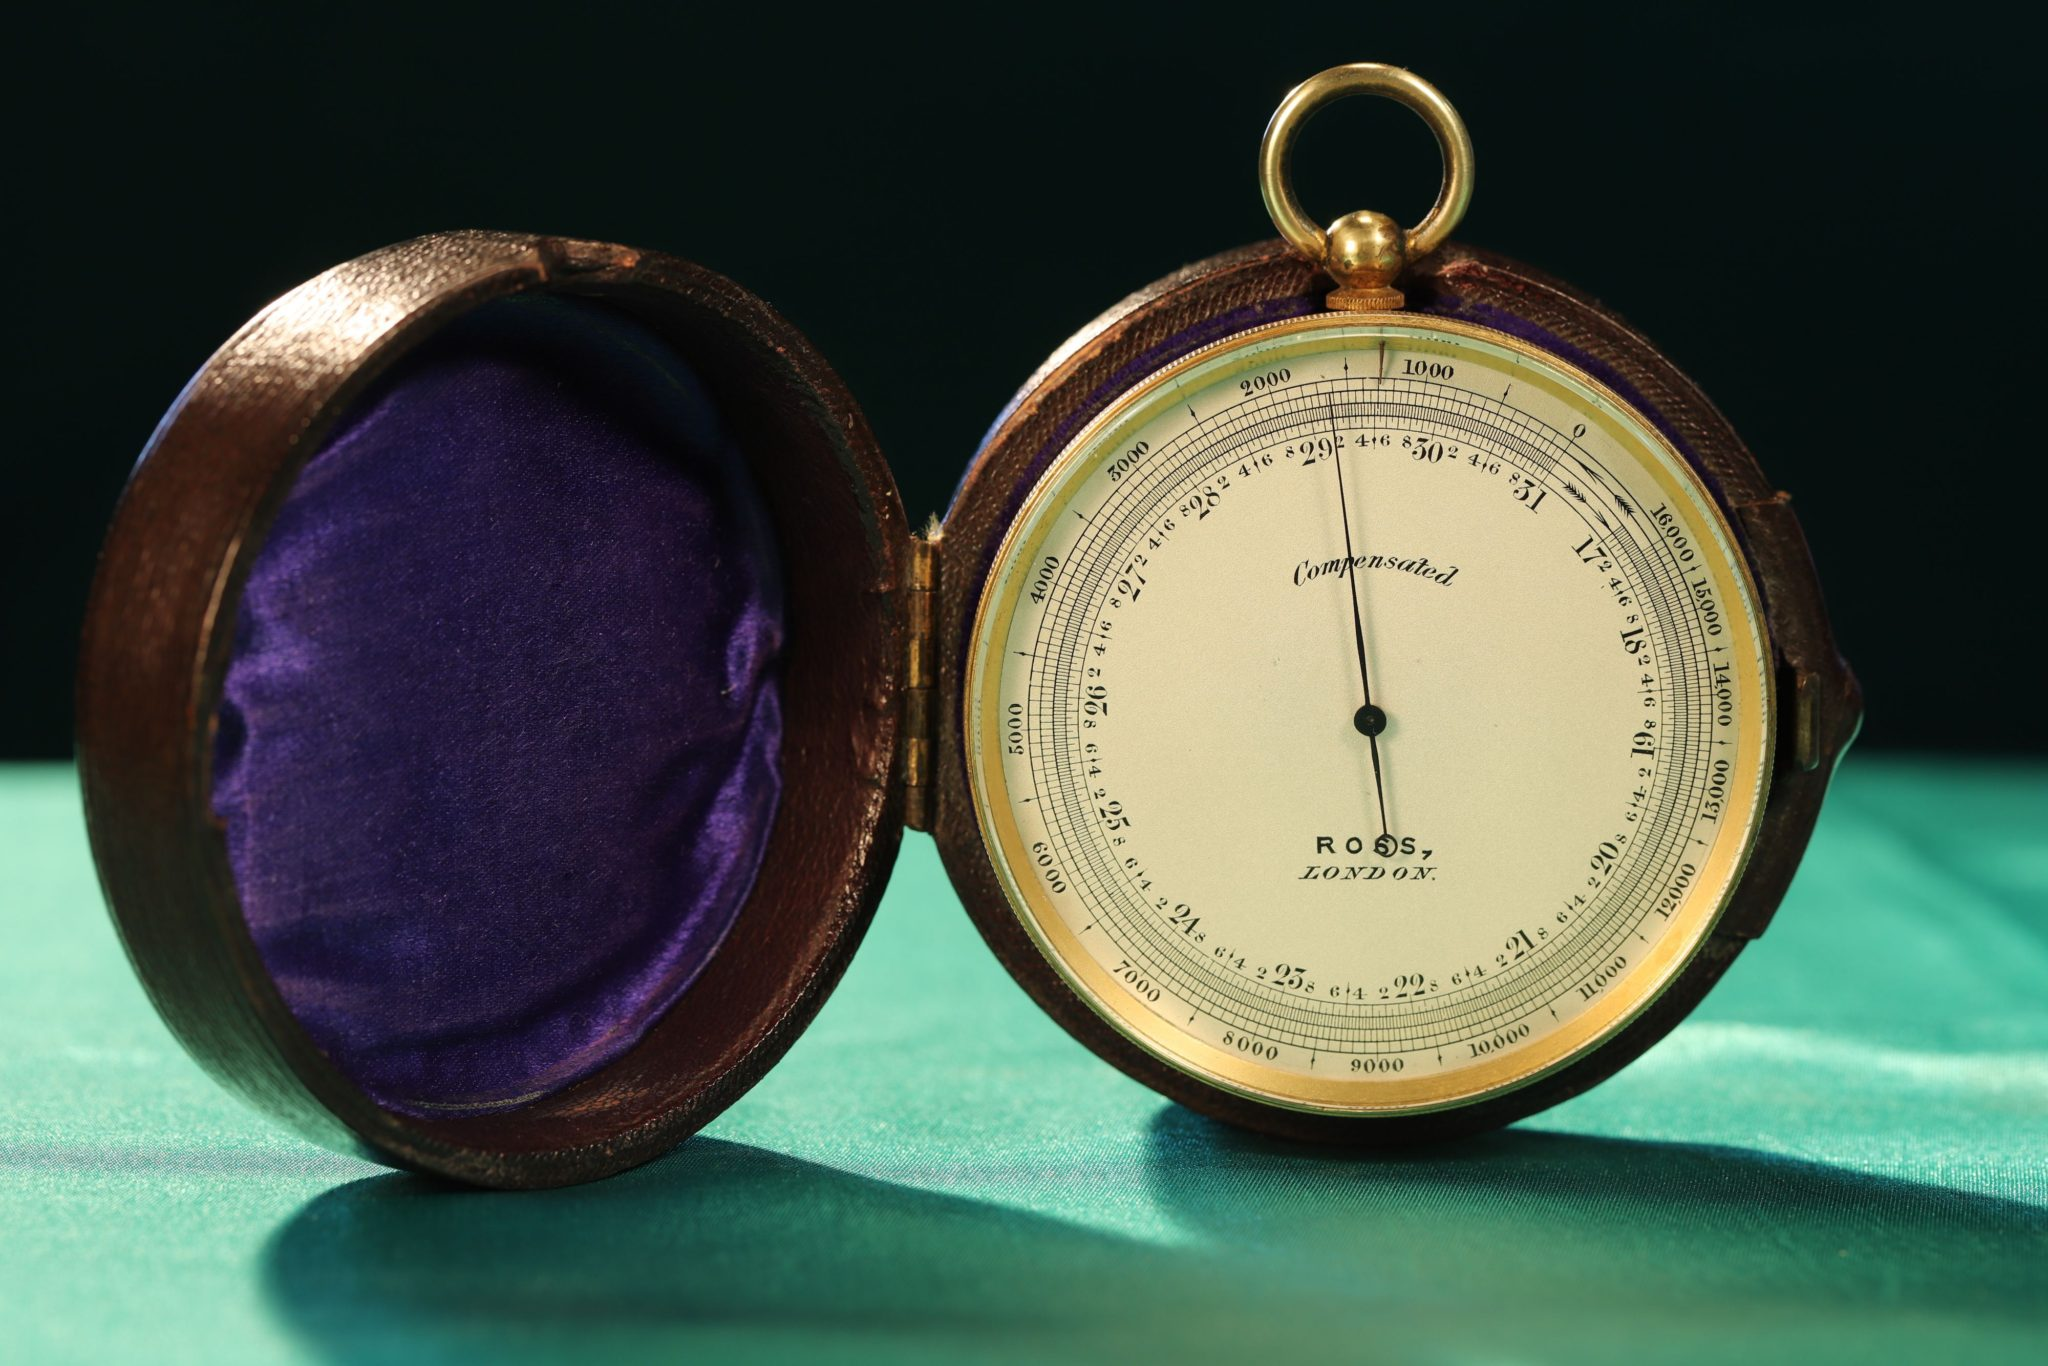 Image of Ross Pocket Barometer Compass Compendium